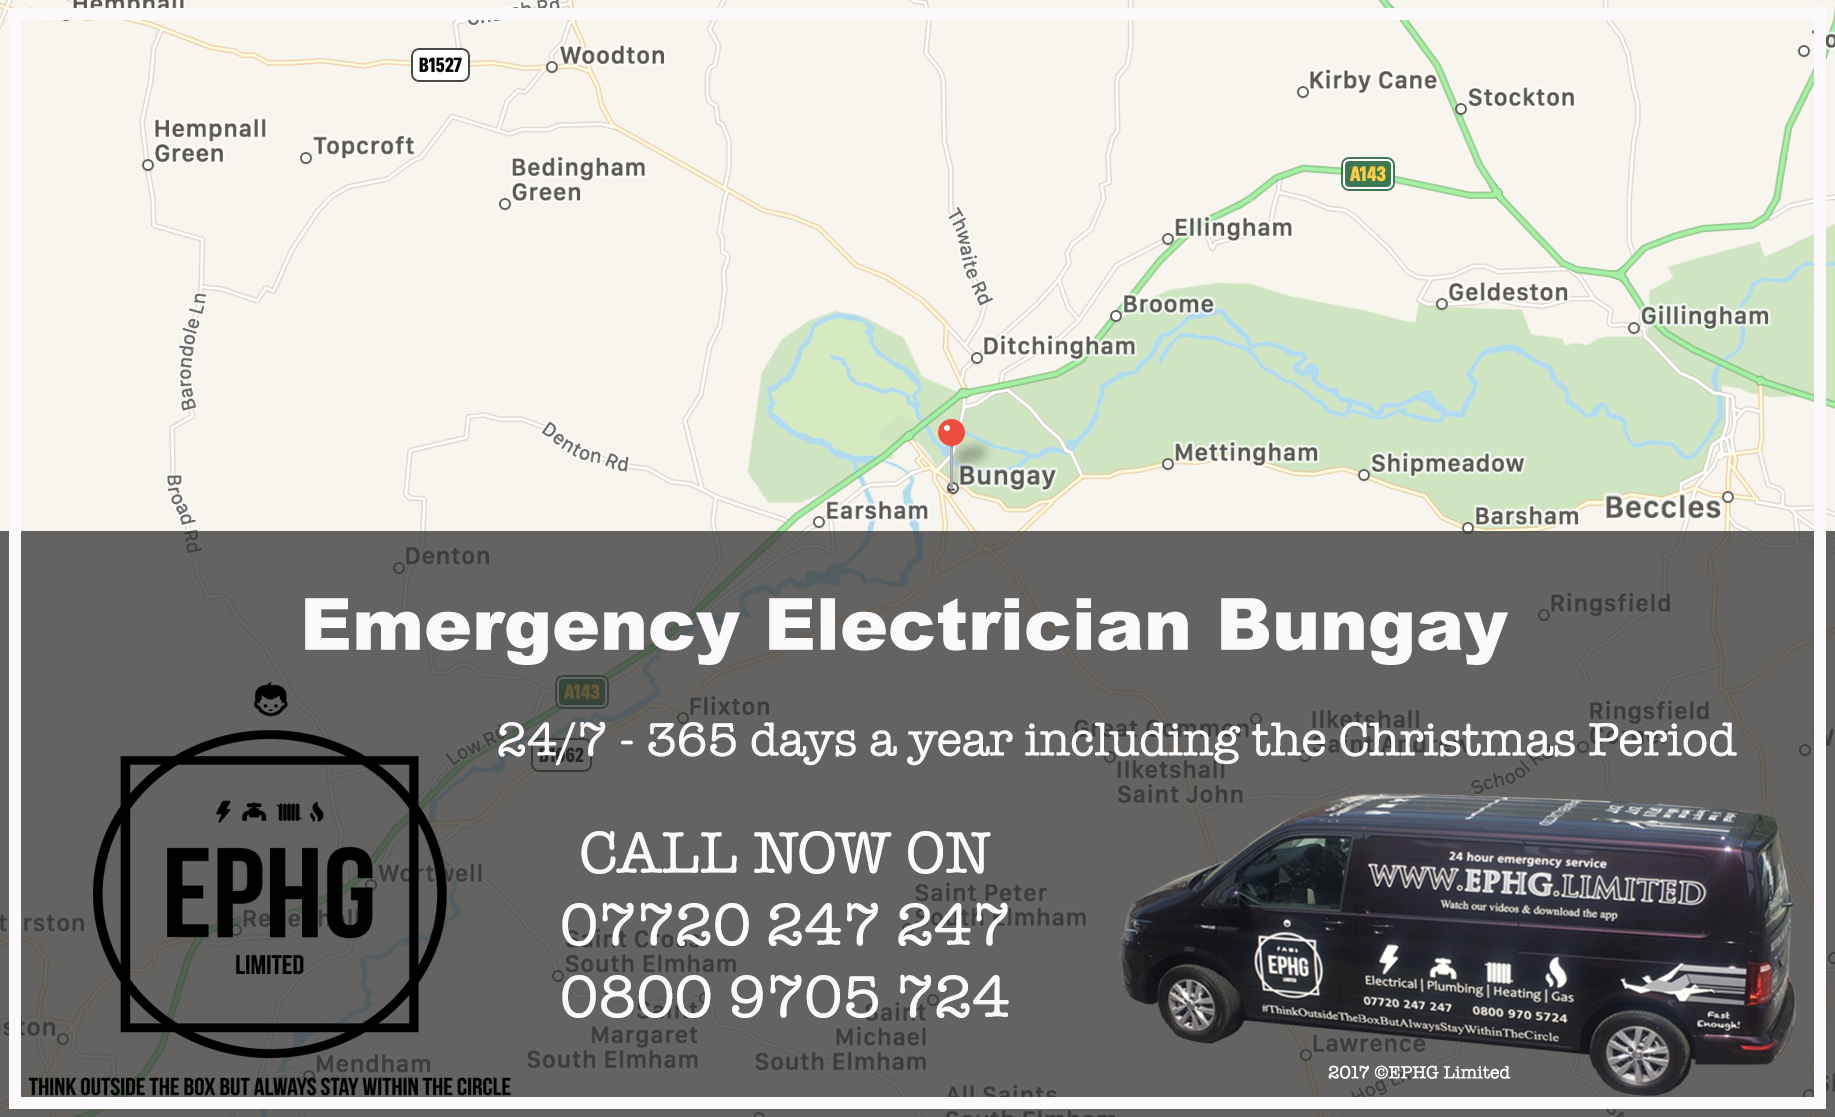 Emergency Electrician Bungay